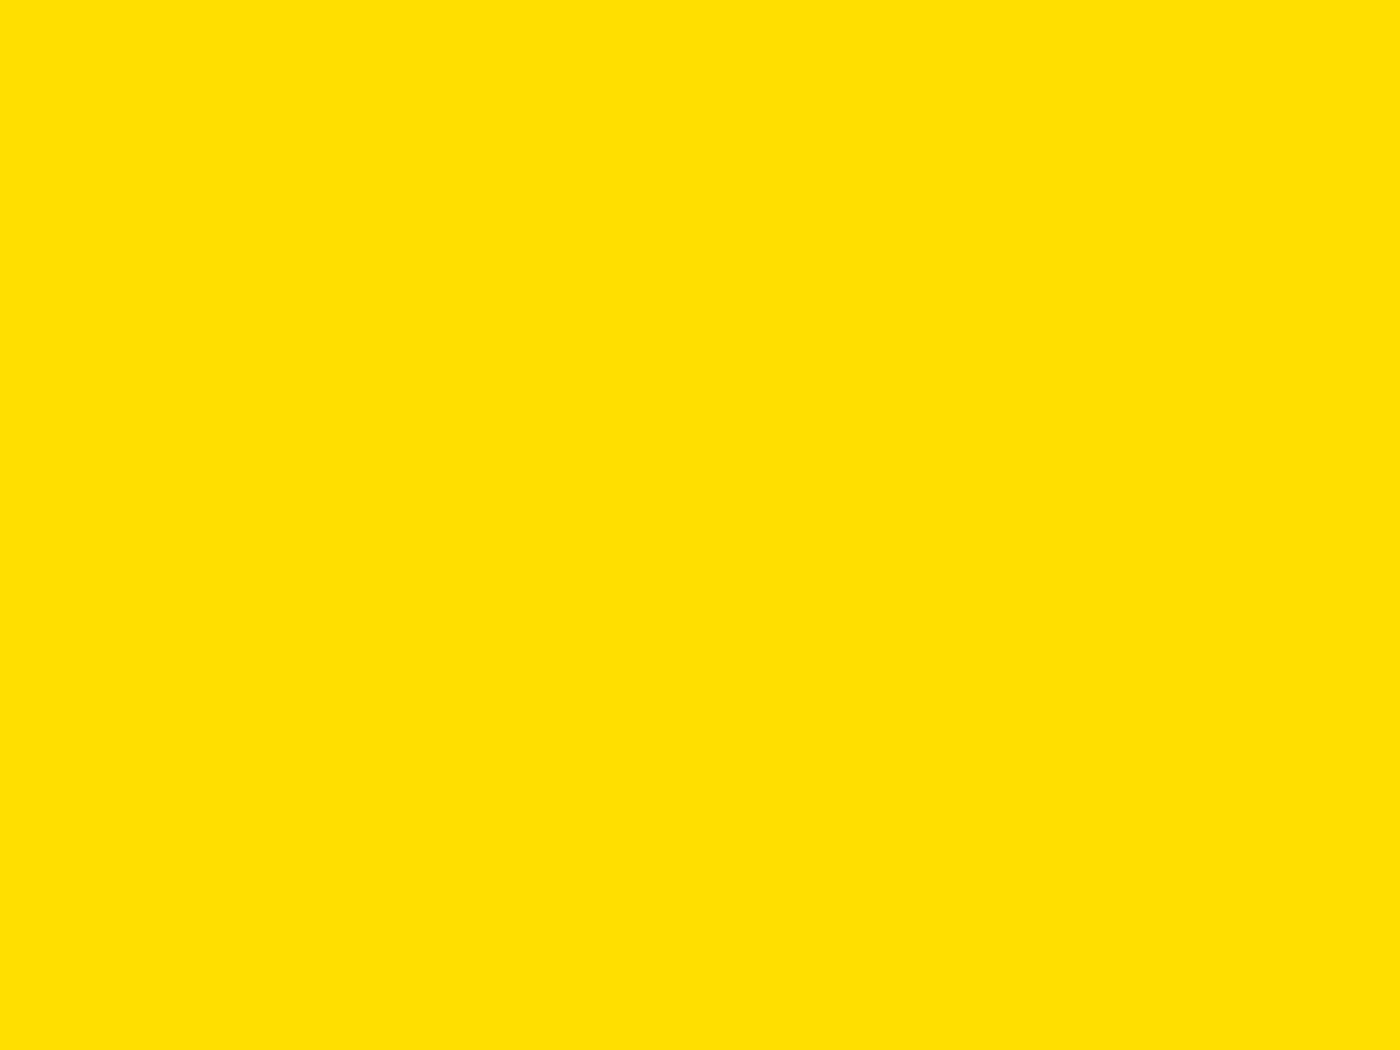 1400x1050 Golden Yellow Solid Color Background